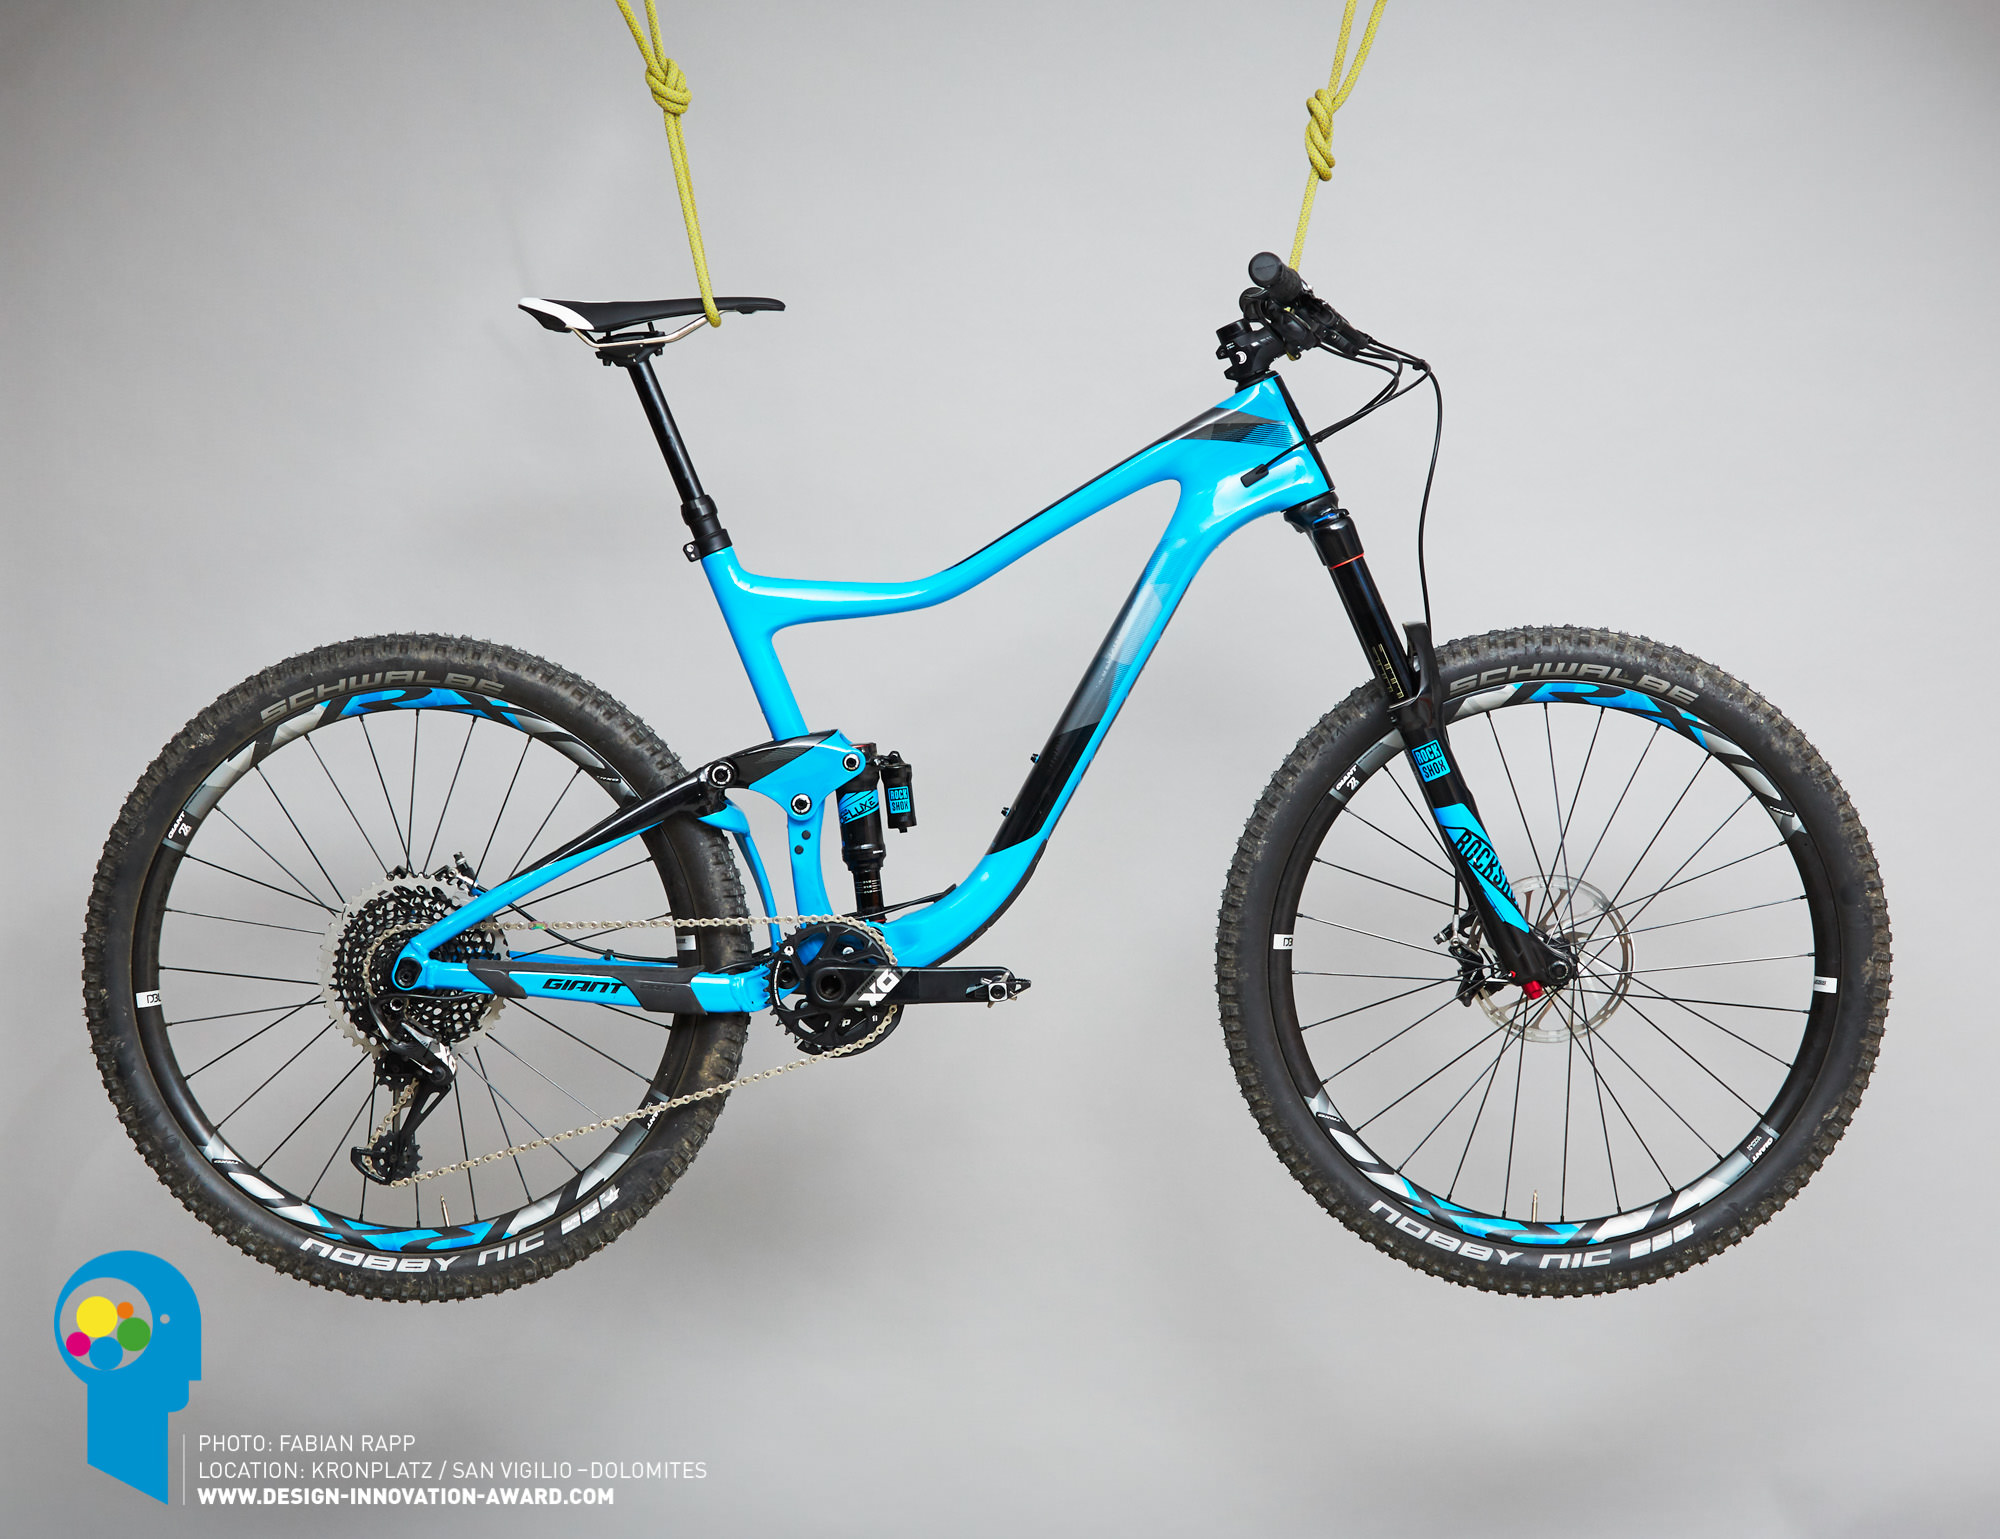 Design innovation award 2018 giant trance advanced 0 for Google terance